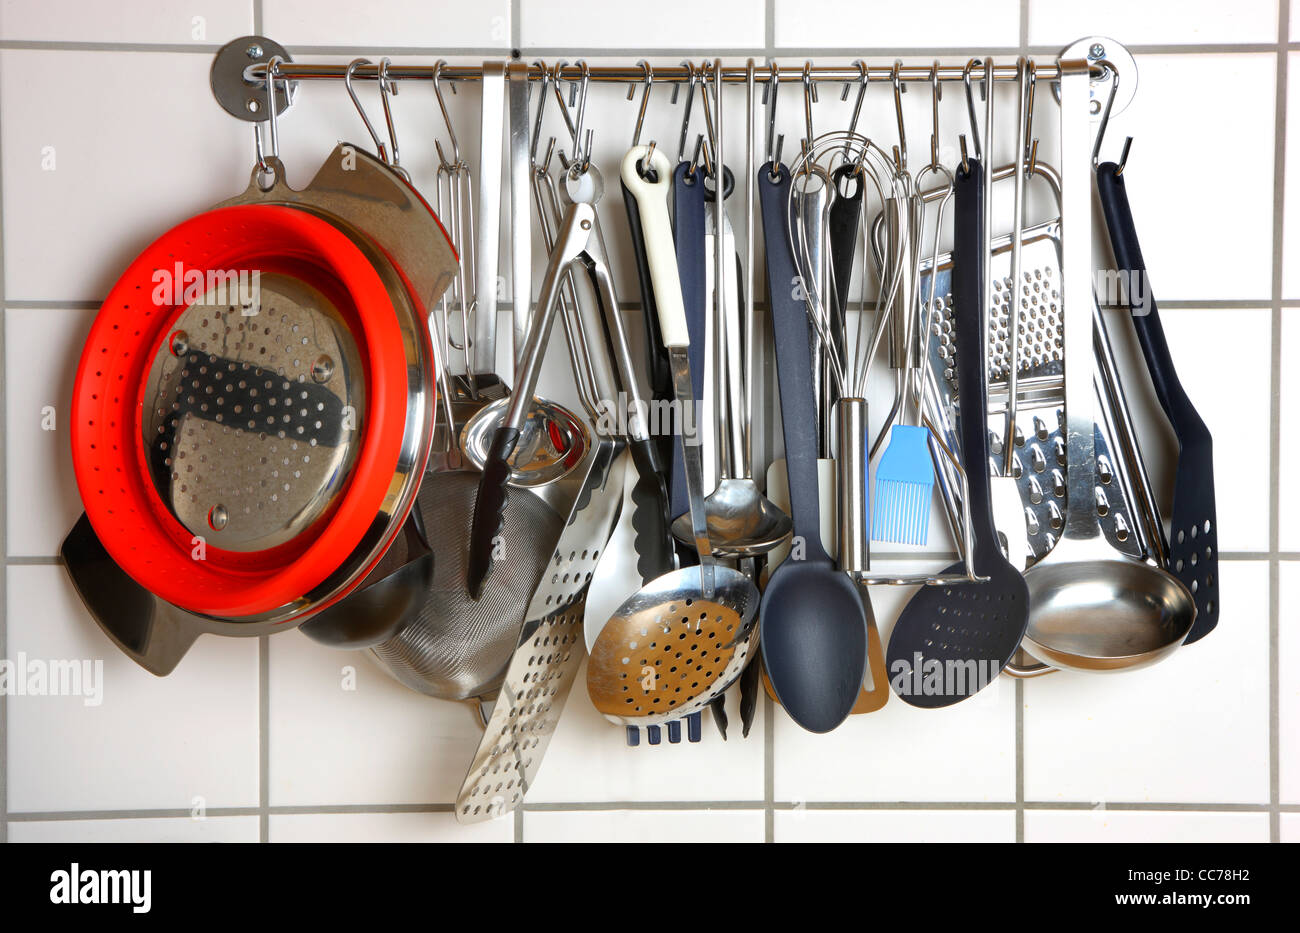 Various kitchen utensils, kitchen tools, hanging at a kitchen wall rack. - Stock Image